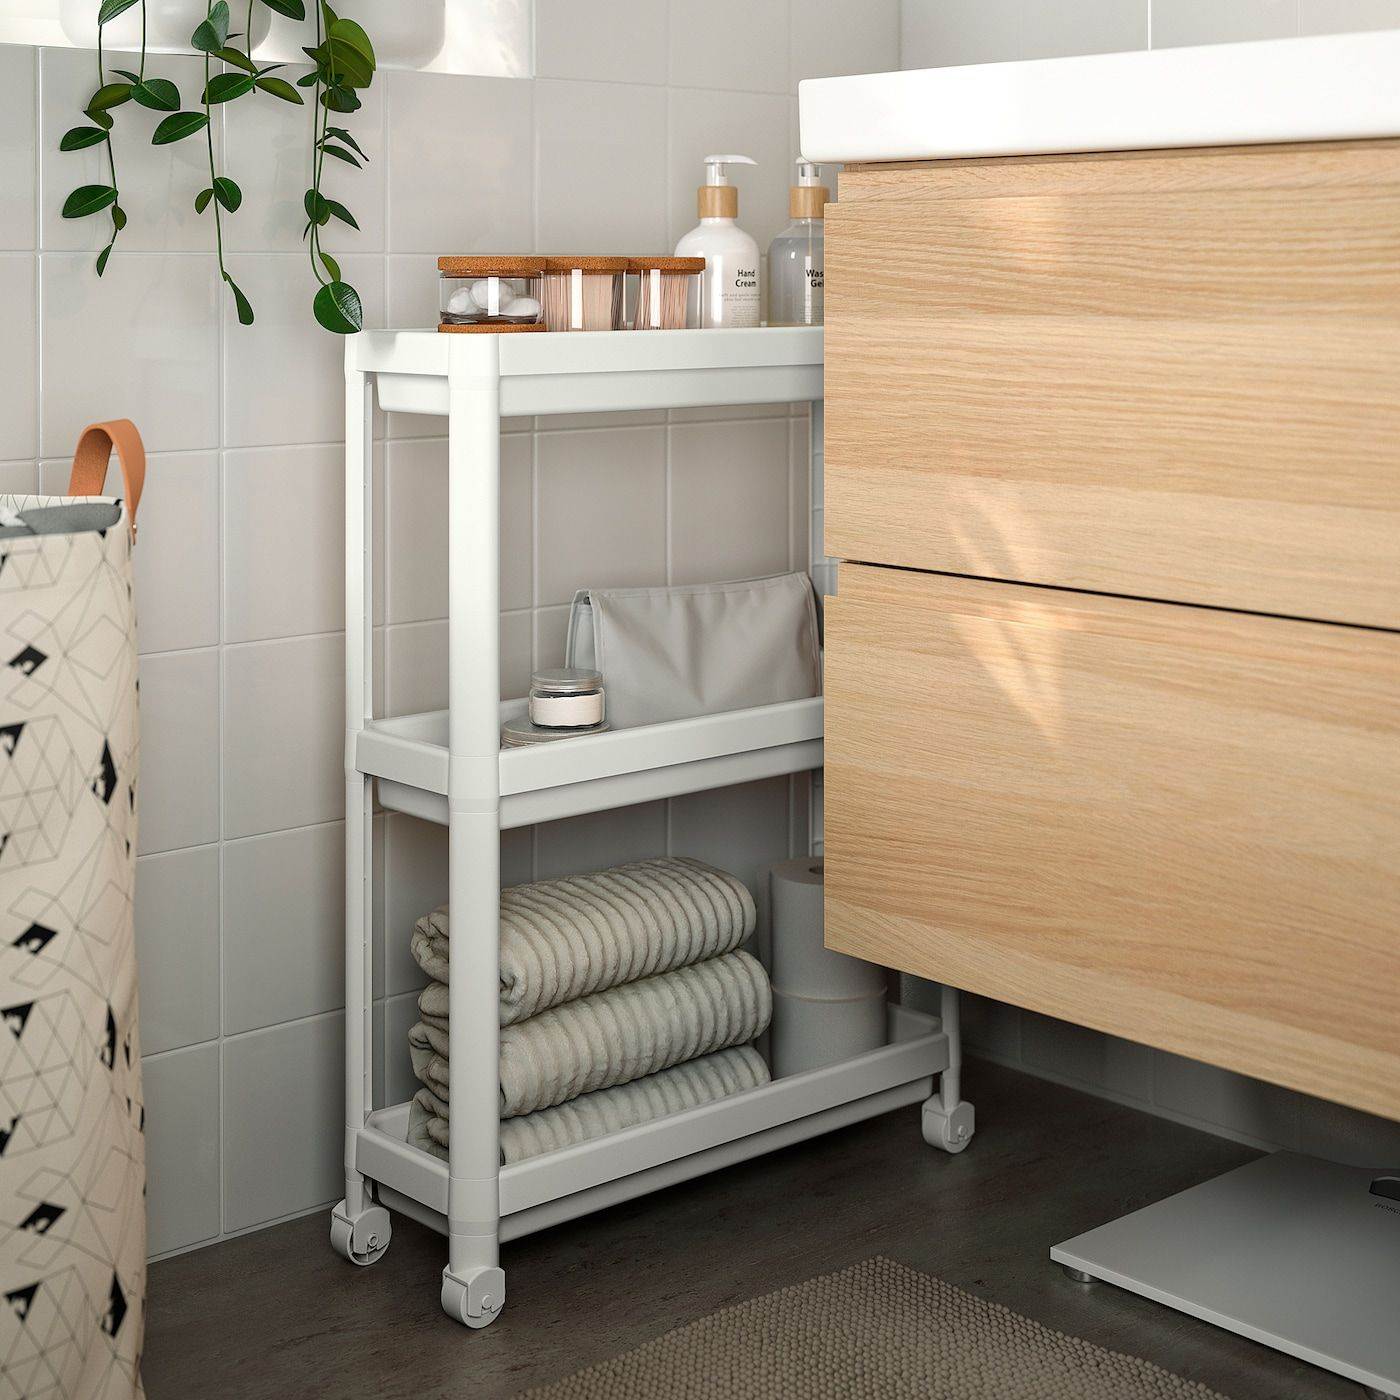 Vesken Rollwagen Weiss Ikea Osterreich In 2020 Ikea Ikea Storage Bathroom Storage Units